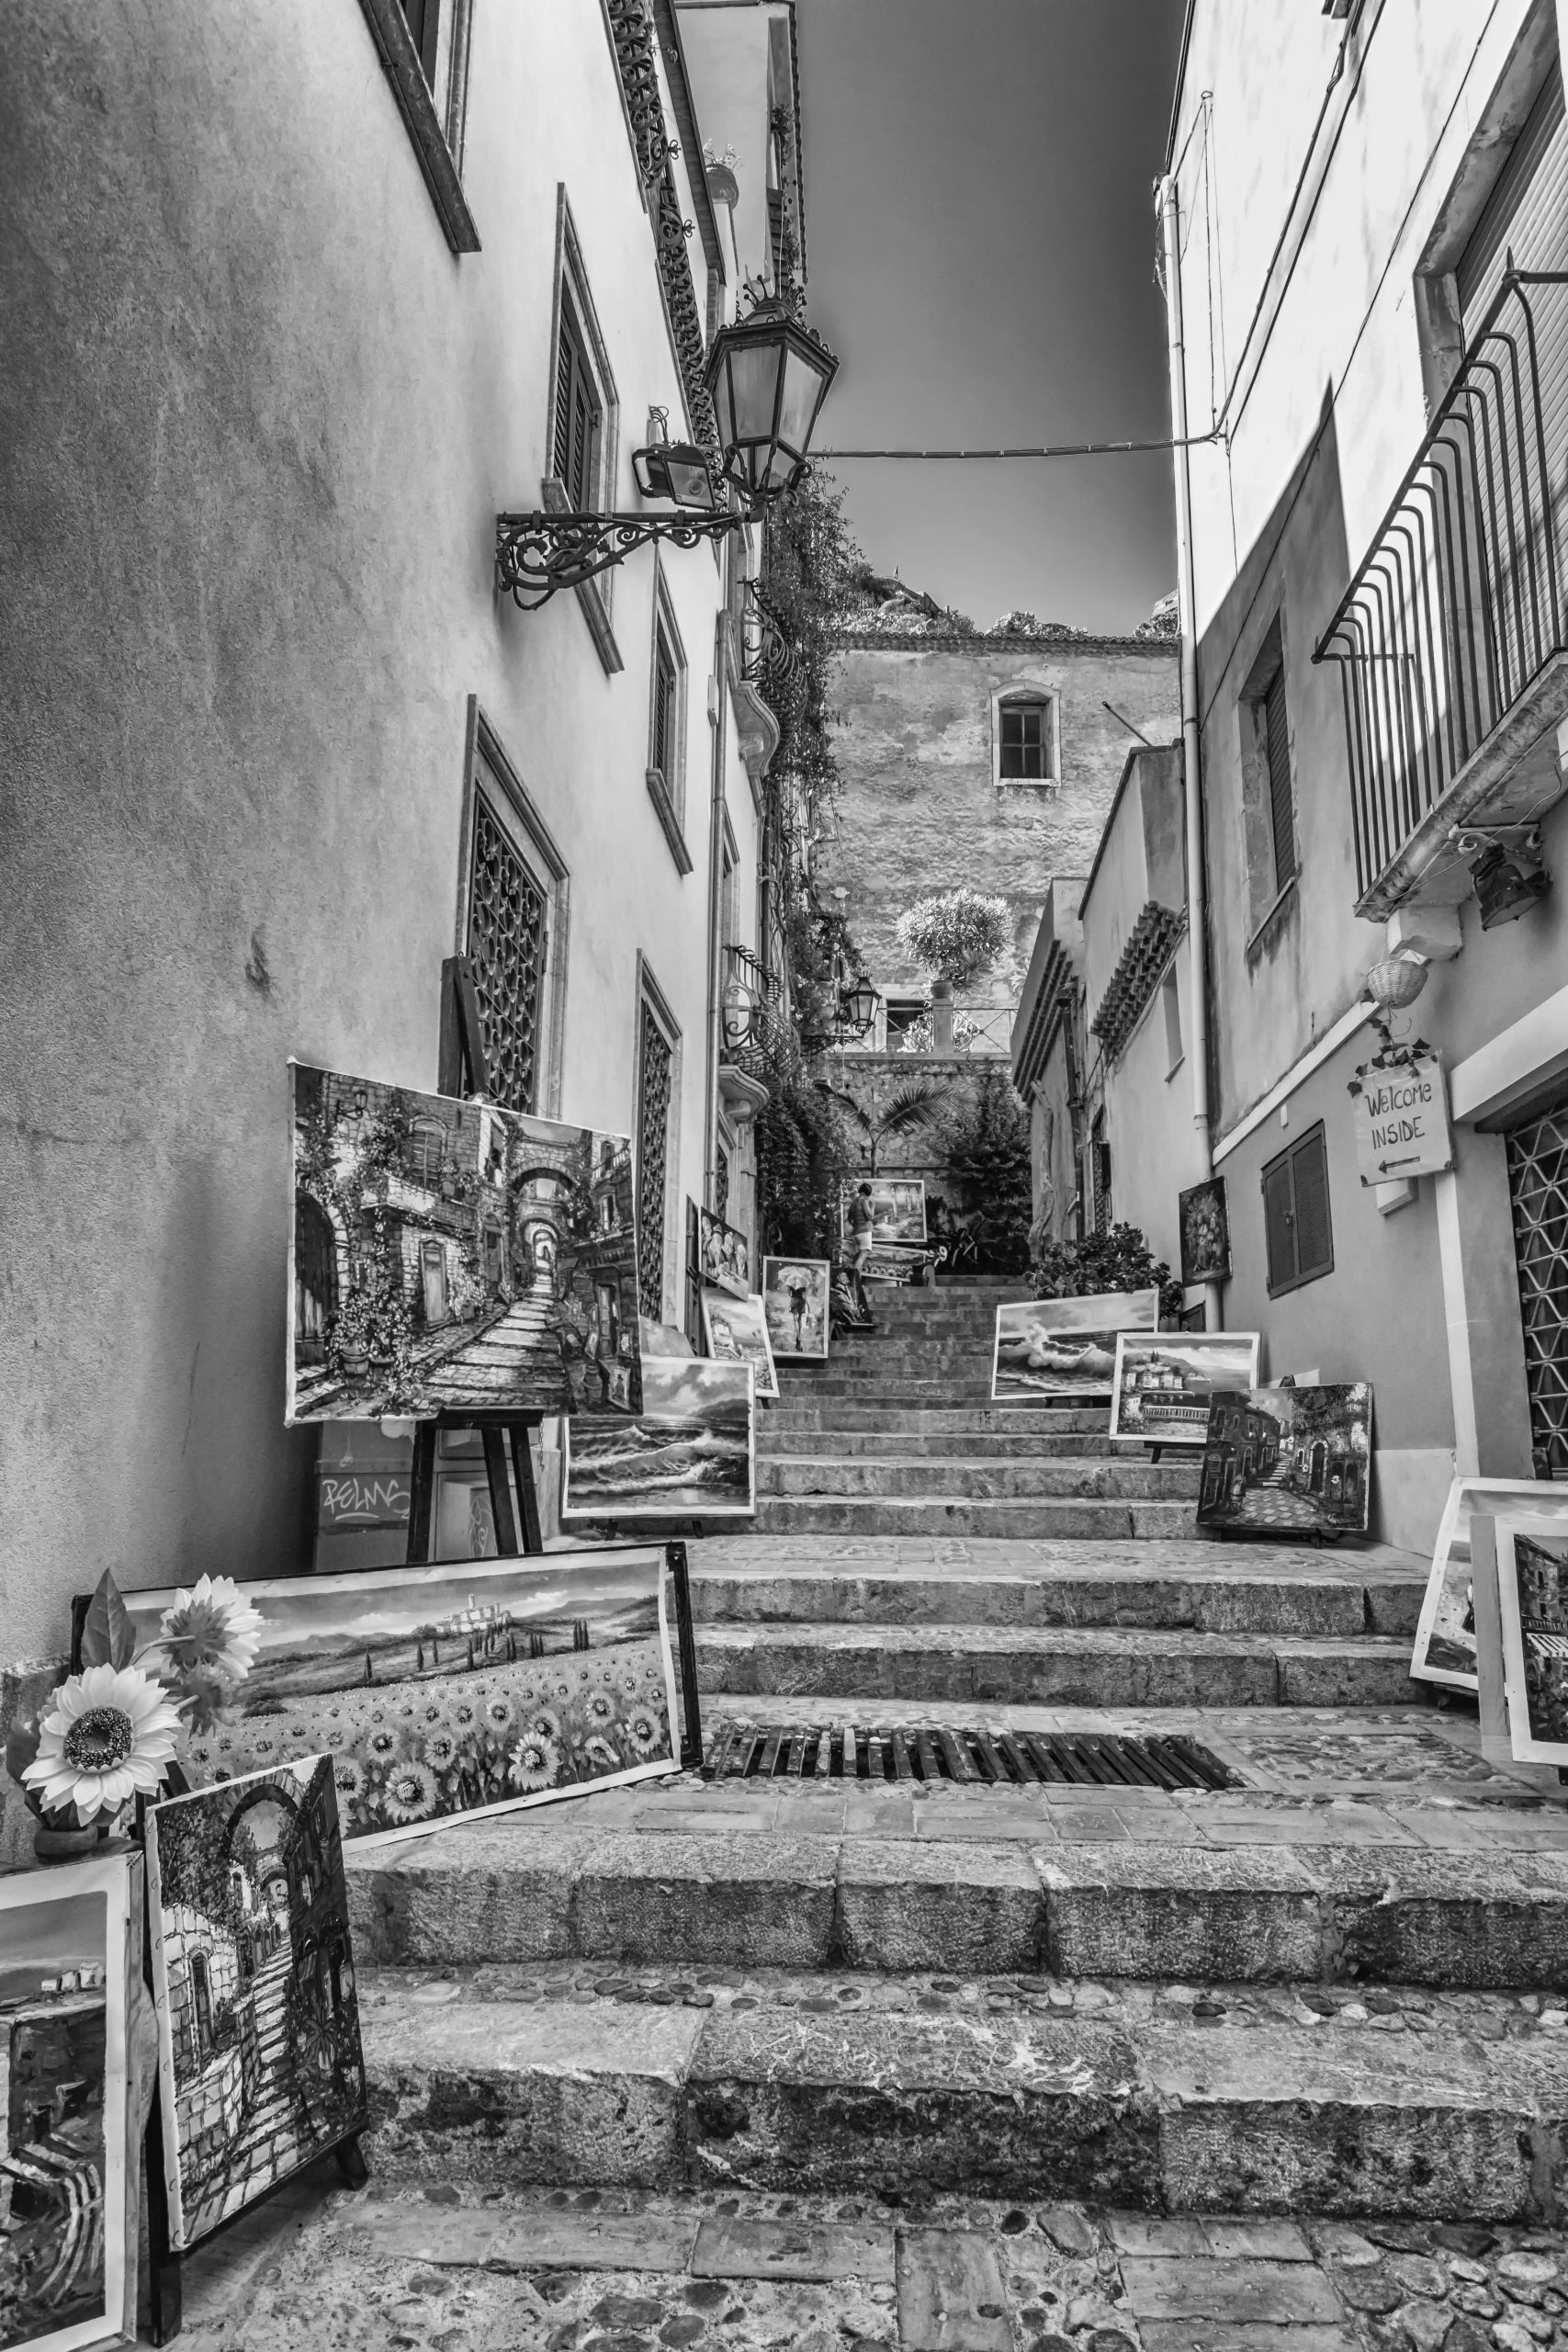 rustic alleyways in sicily